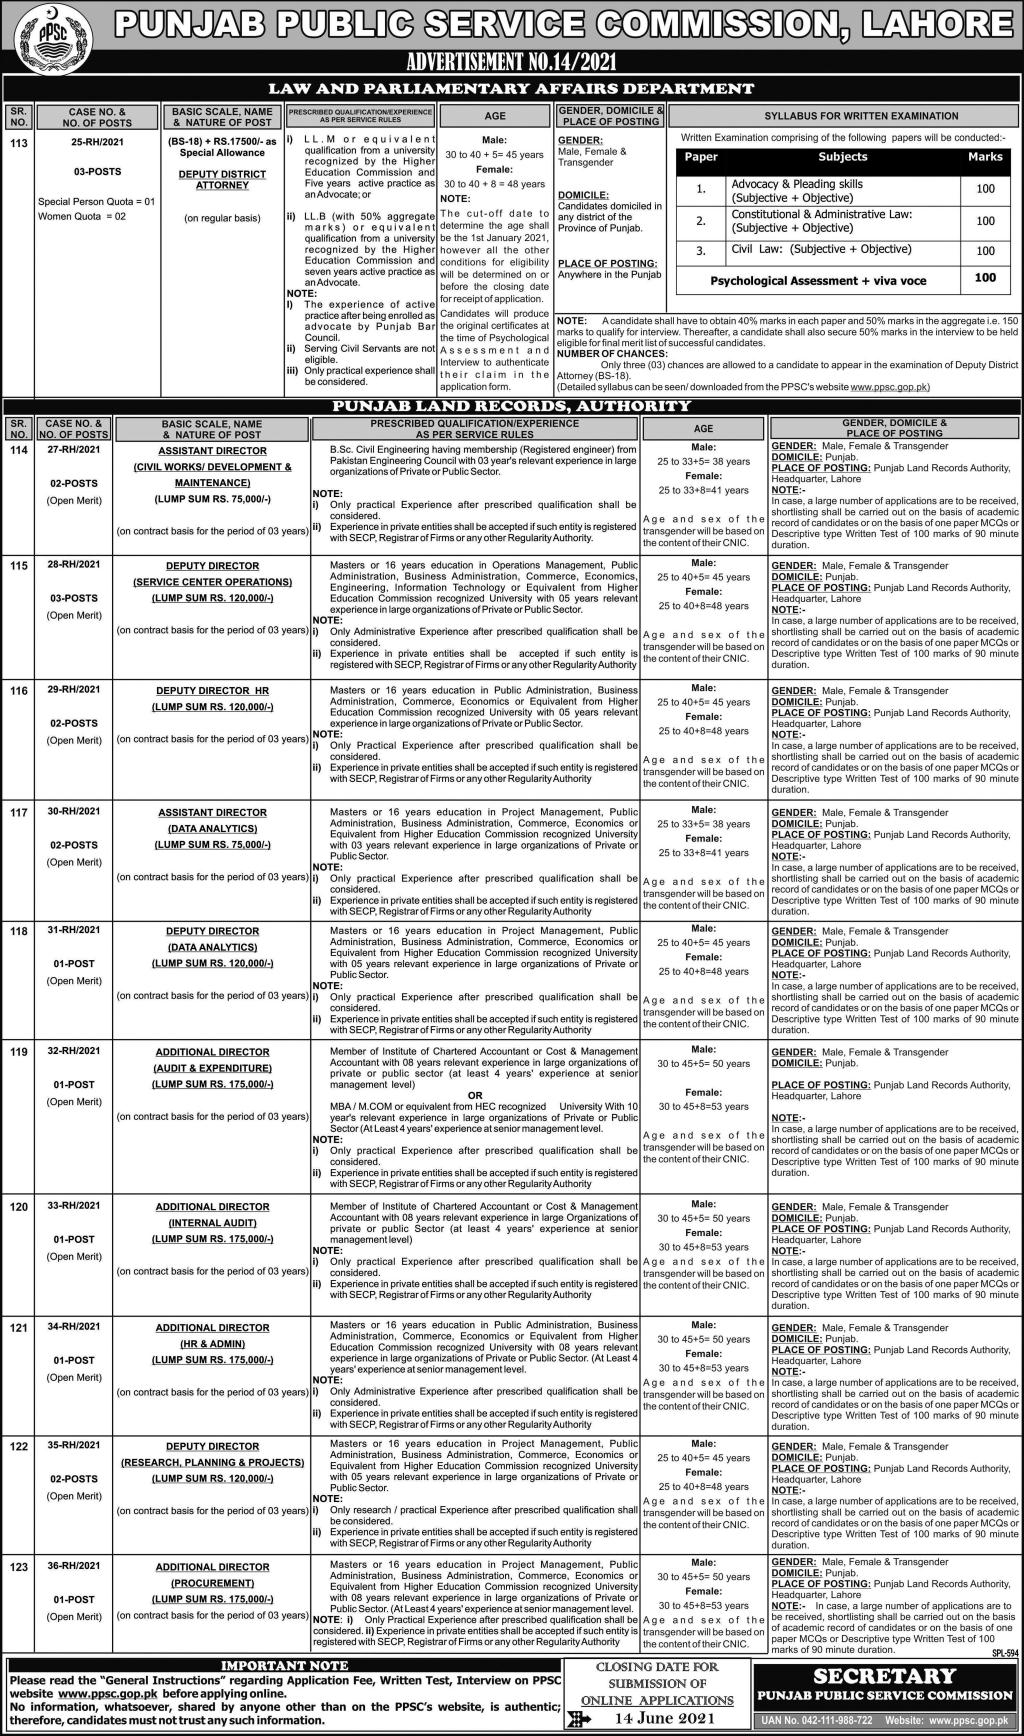 PPSC Latest Jobs in May 2021